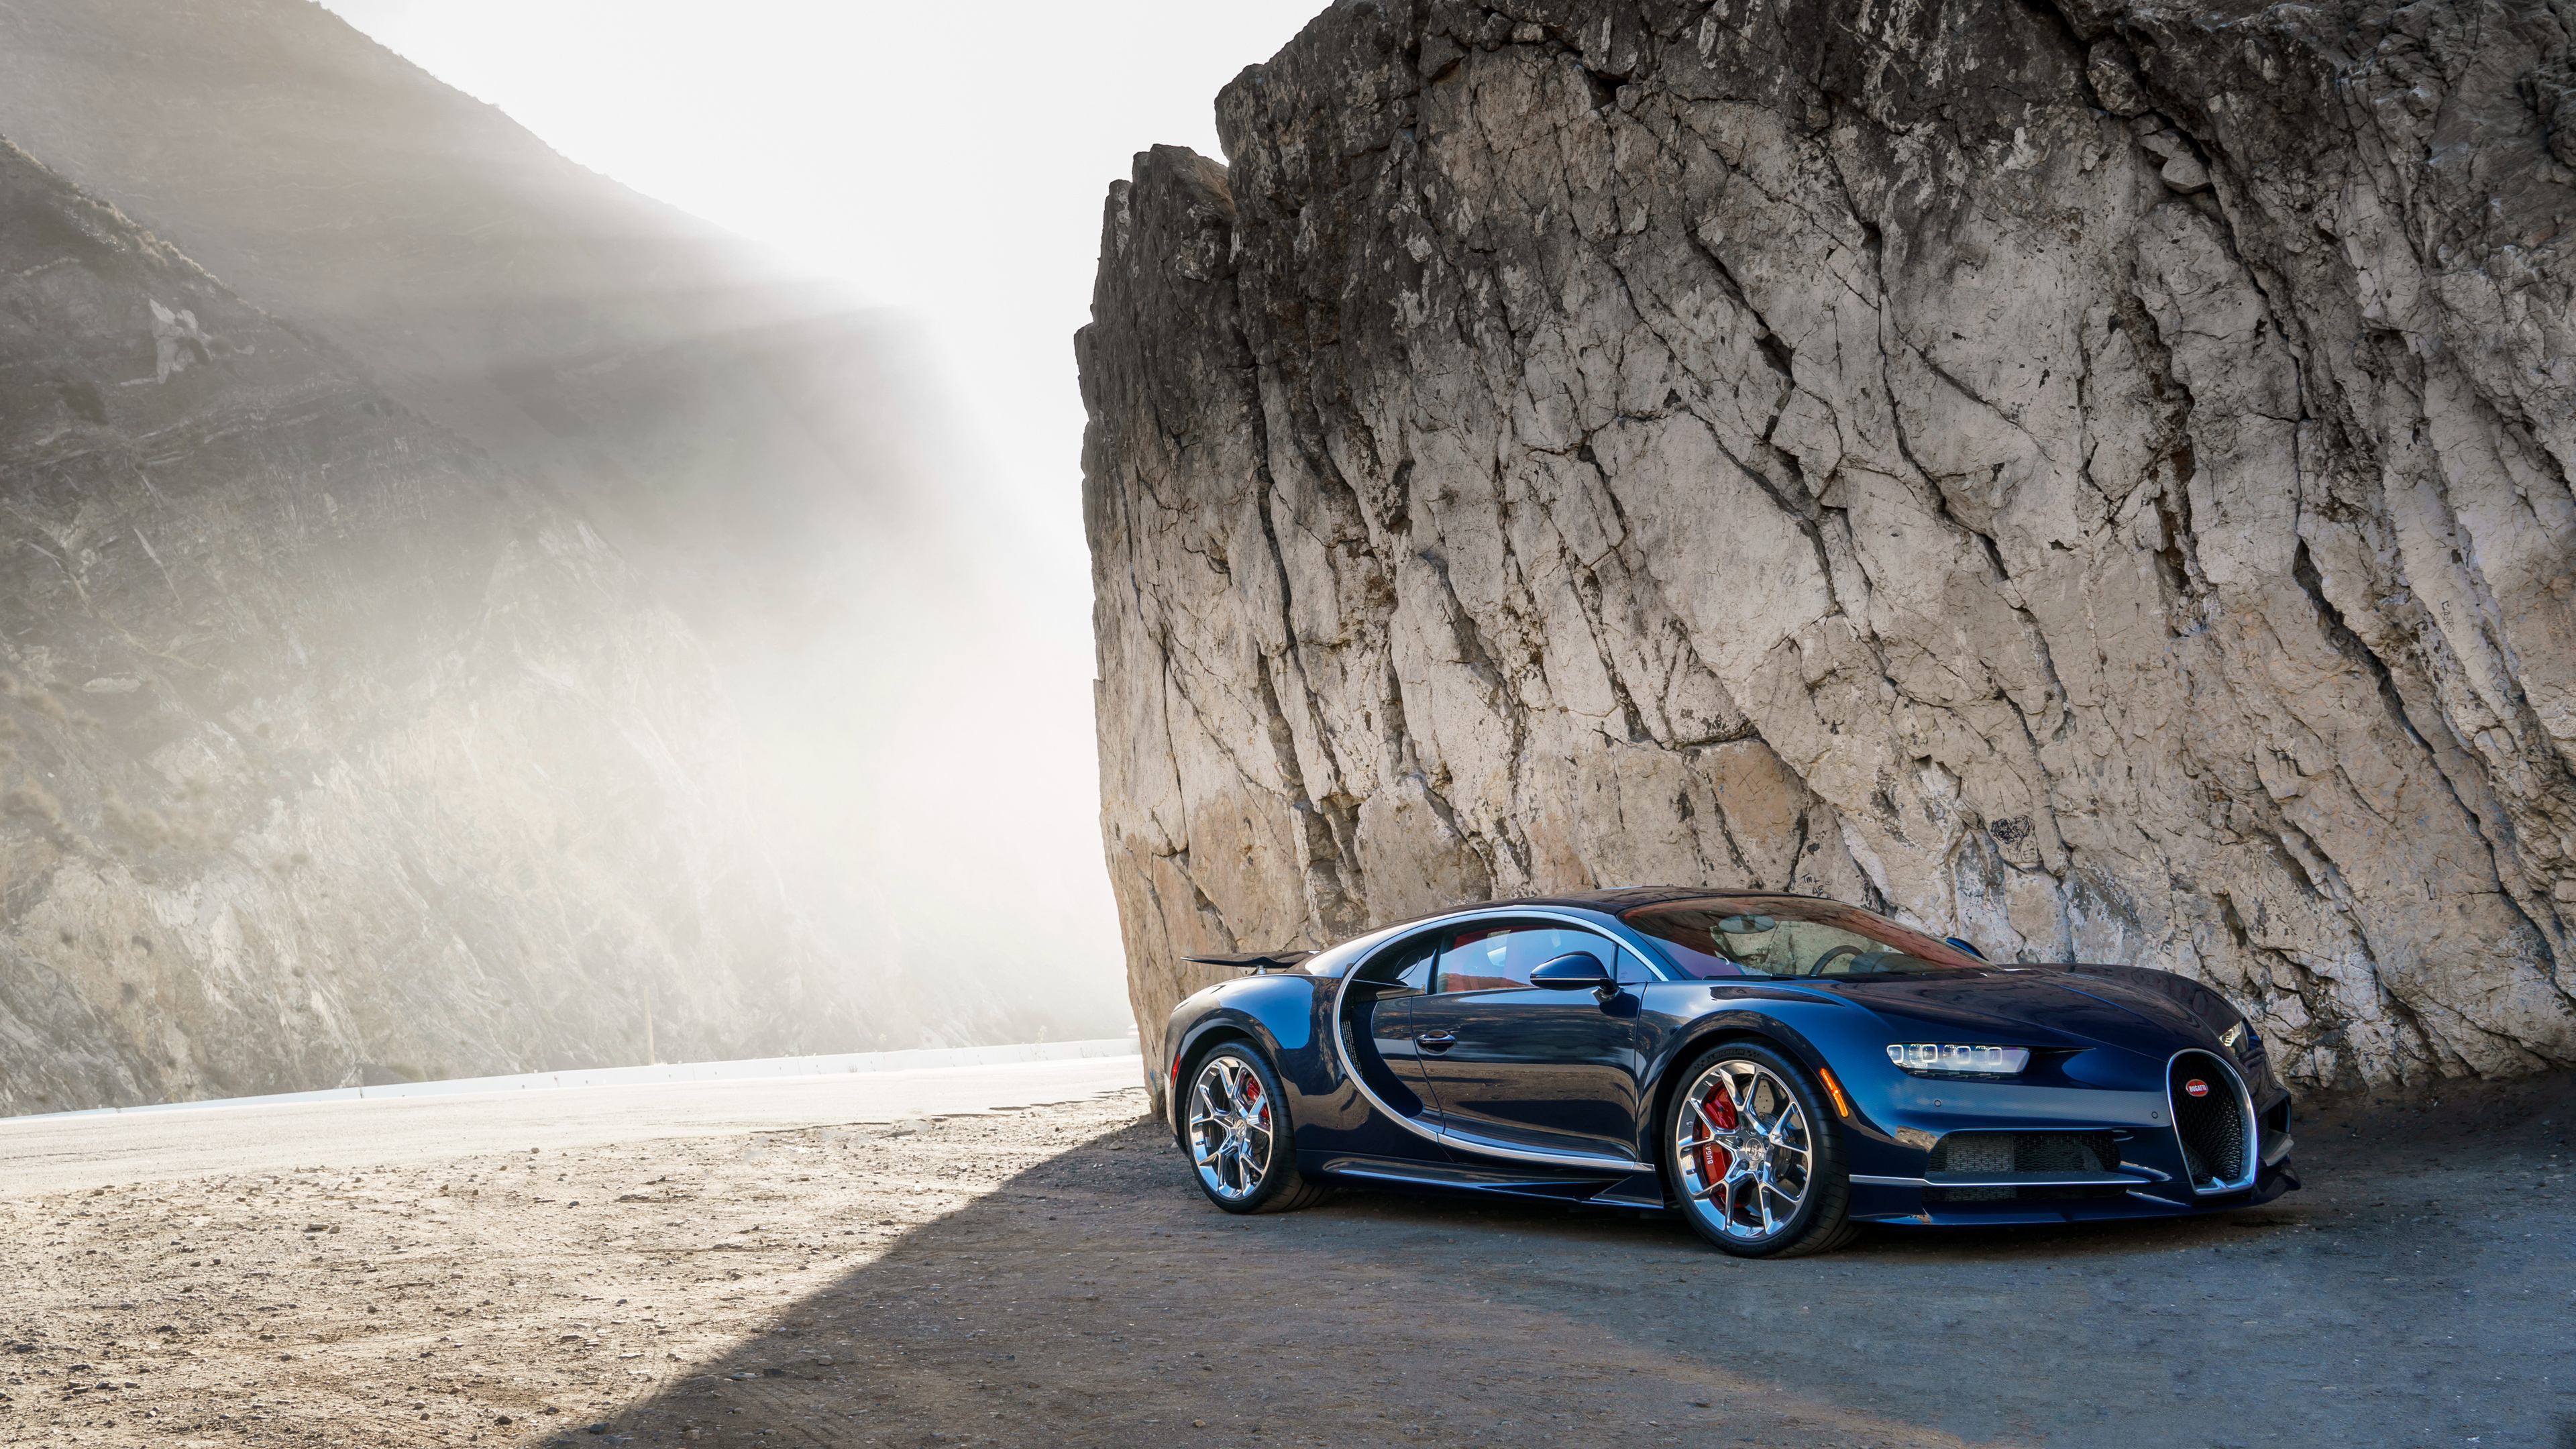 2018 Bugatti Chiron Wallpaper Hd Car Wallpapers Id 6948